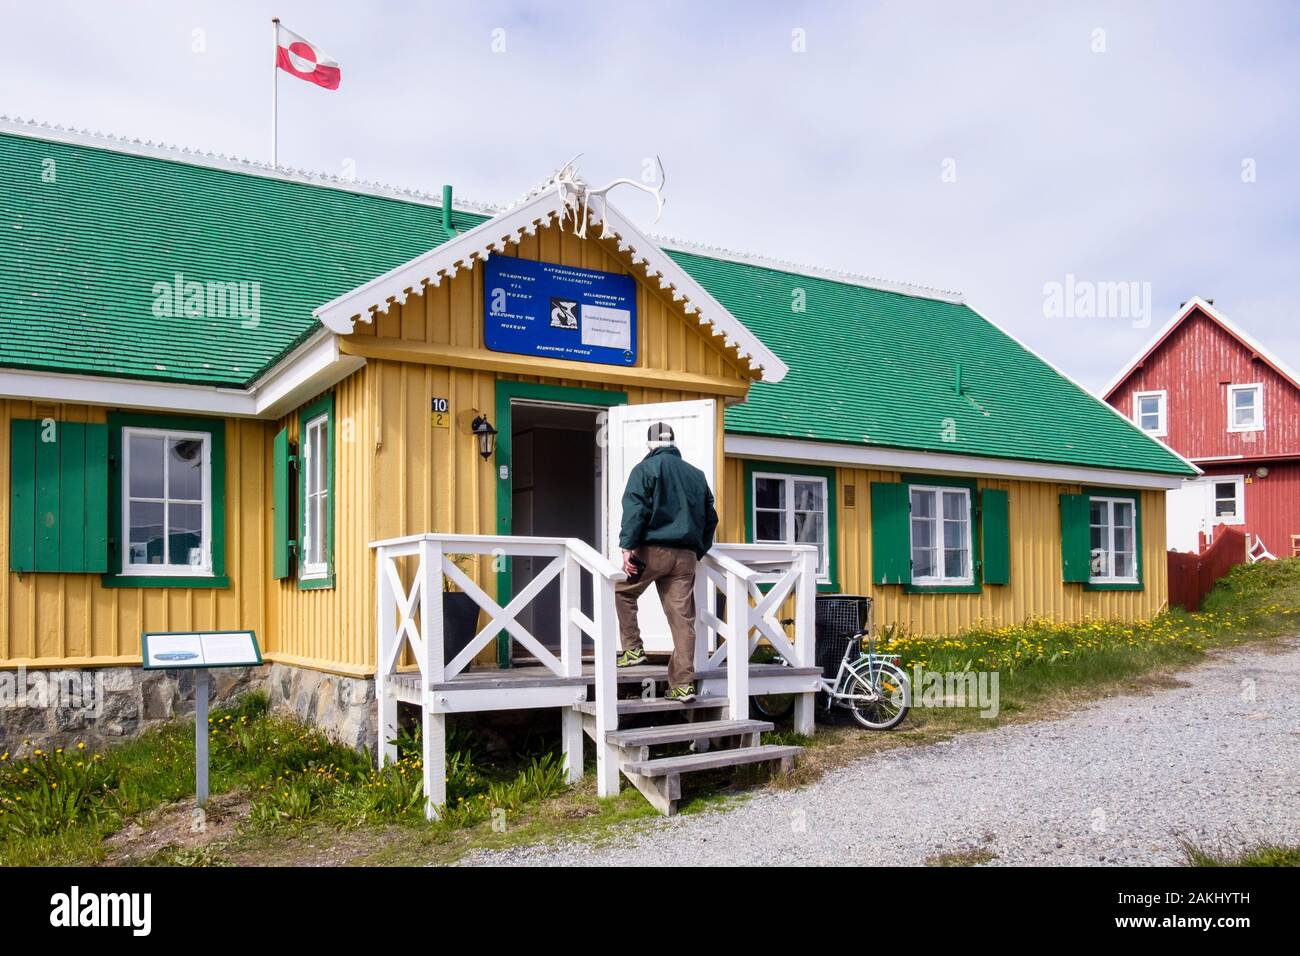 Tourist visiting traditional building former Governors Residence 1839 of Katersugaasivat museum in Paamiut (Frederikshåb), Sermersooq, Greenland Stock Photo